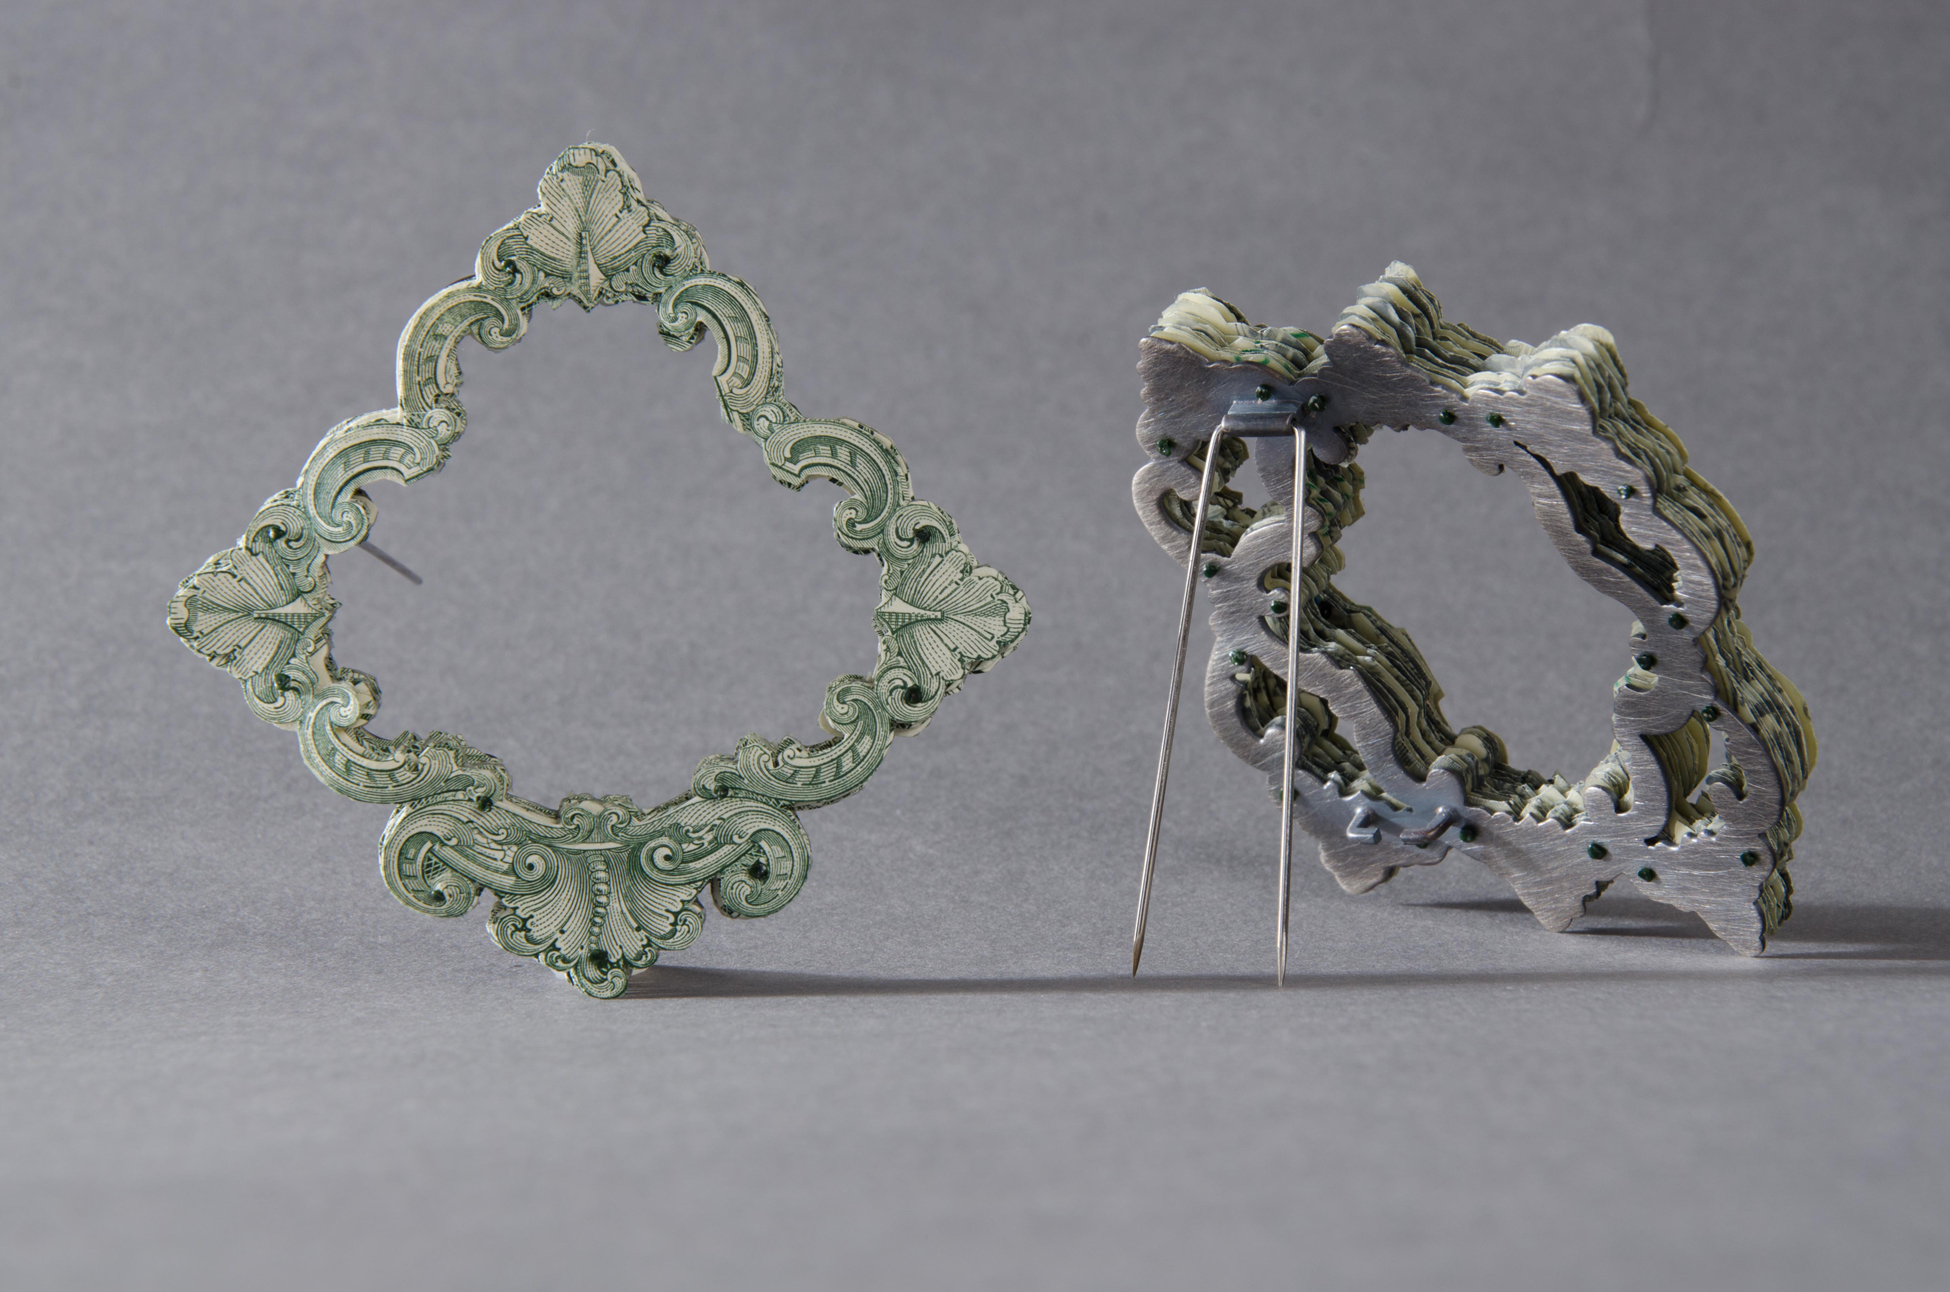 $36.00 and $45.00 Currency Converted  | Brooches | US Currency, Silver, Latex, Monofilament, and Surgical Steel | 2013 | Photo Credit Marc Creedon